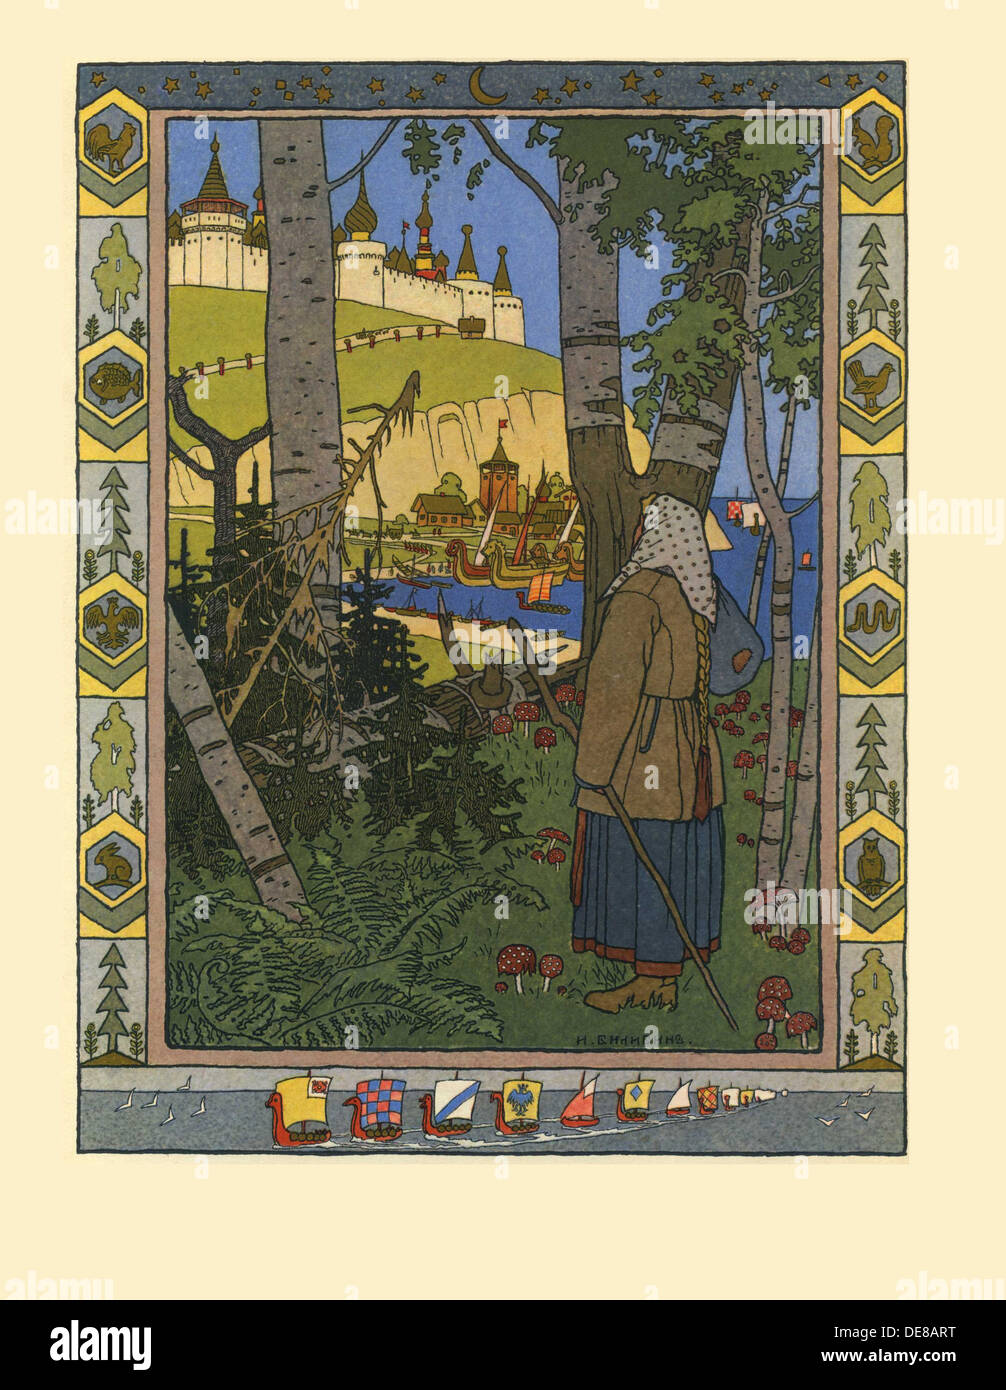 Illustration for the Fairy tale The Feather of Finist the Falcon, 1901-1902. Artist: Bilibin, Ivan Yakovlevich (1876-1942) - Stock Image